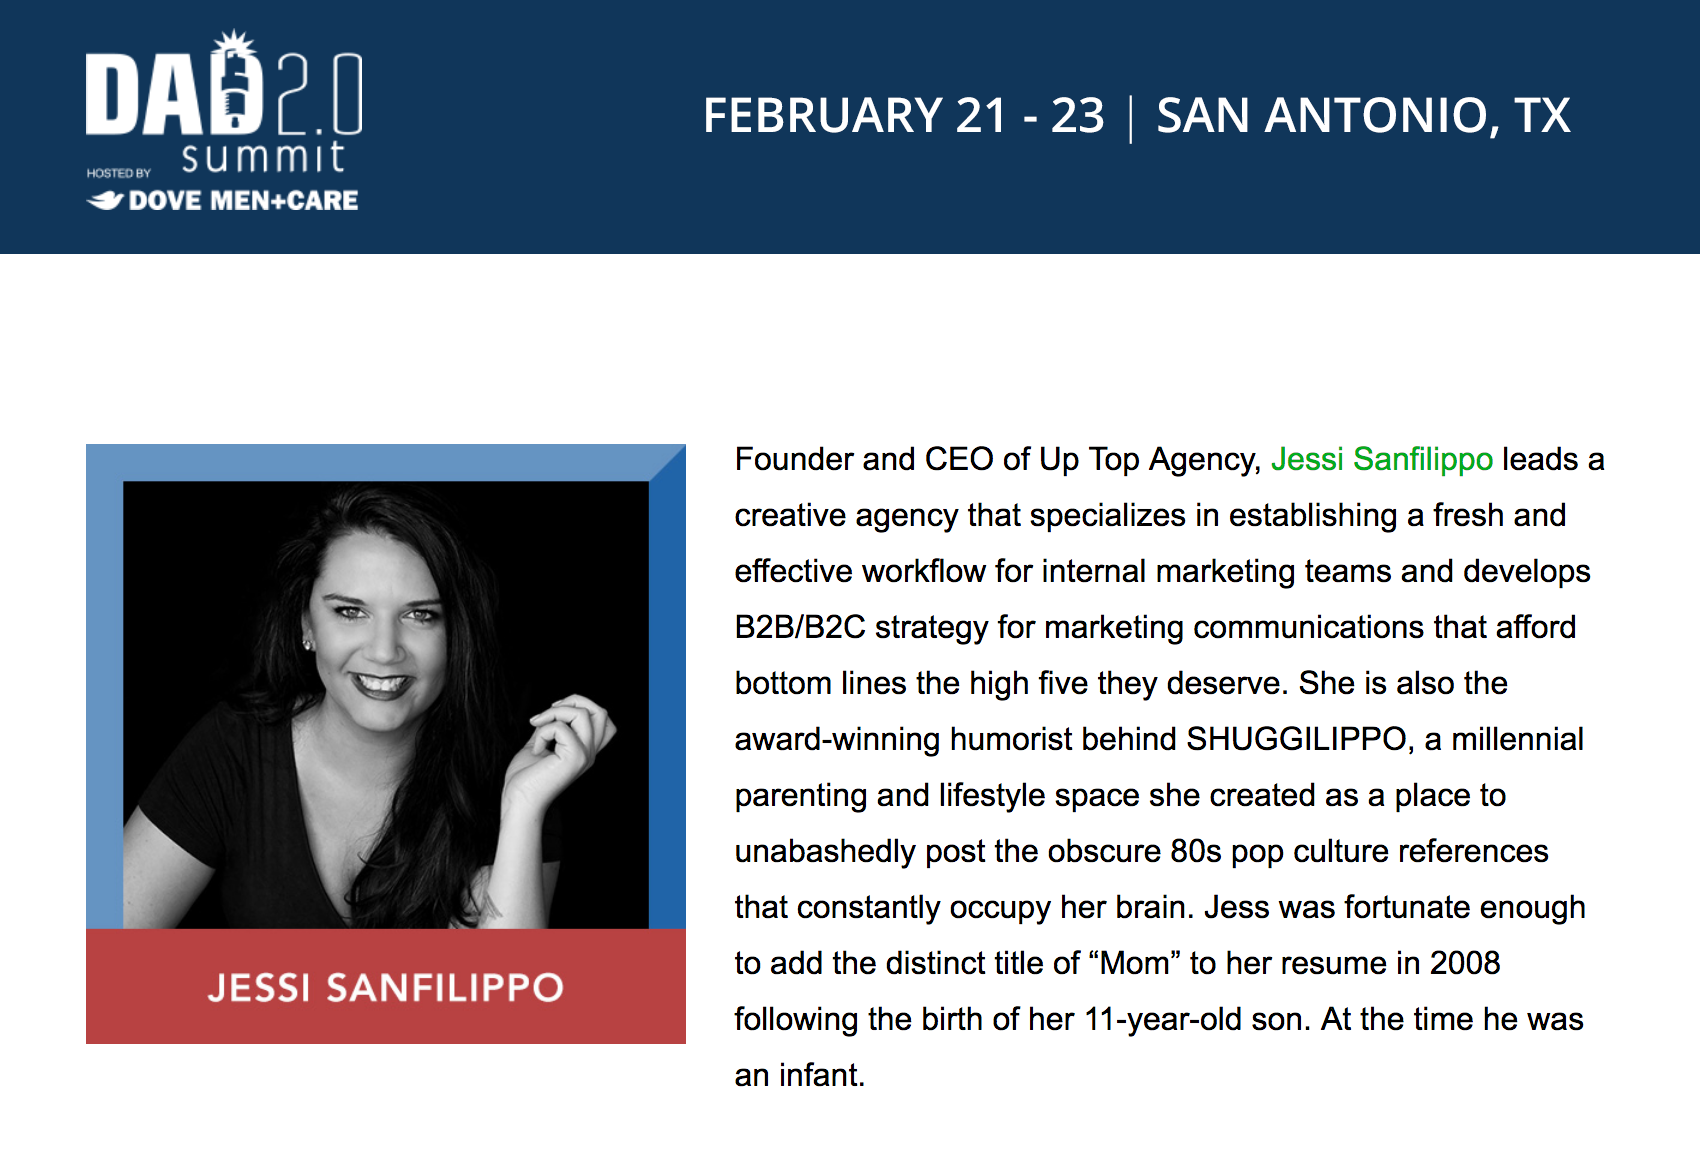 Jessi Sanfilippo, Founder + CEO of Up Top Agency, speaks at Dad 2.0 Summit 2019 in San Antonio, TX